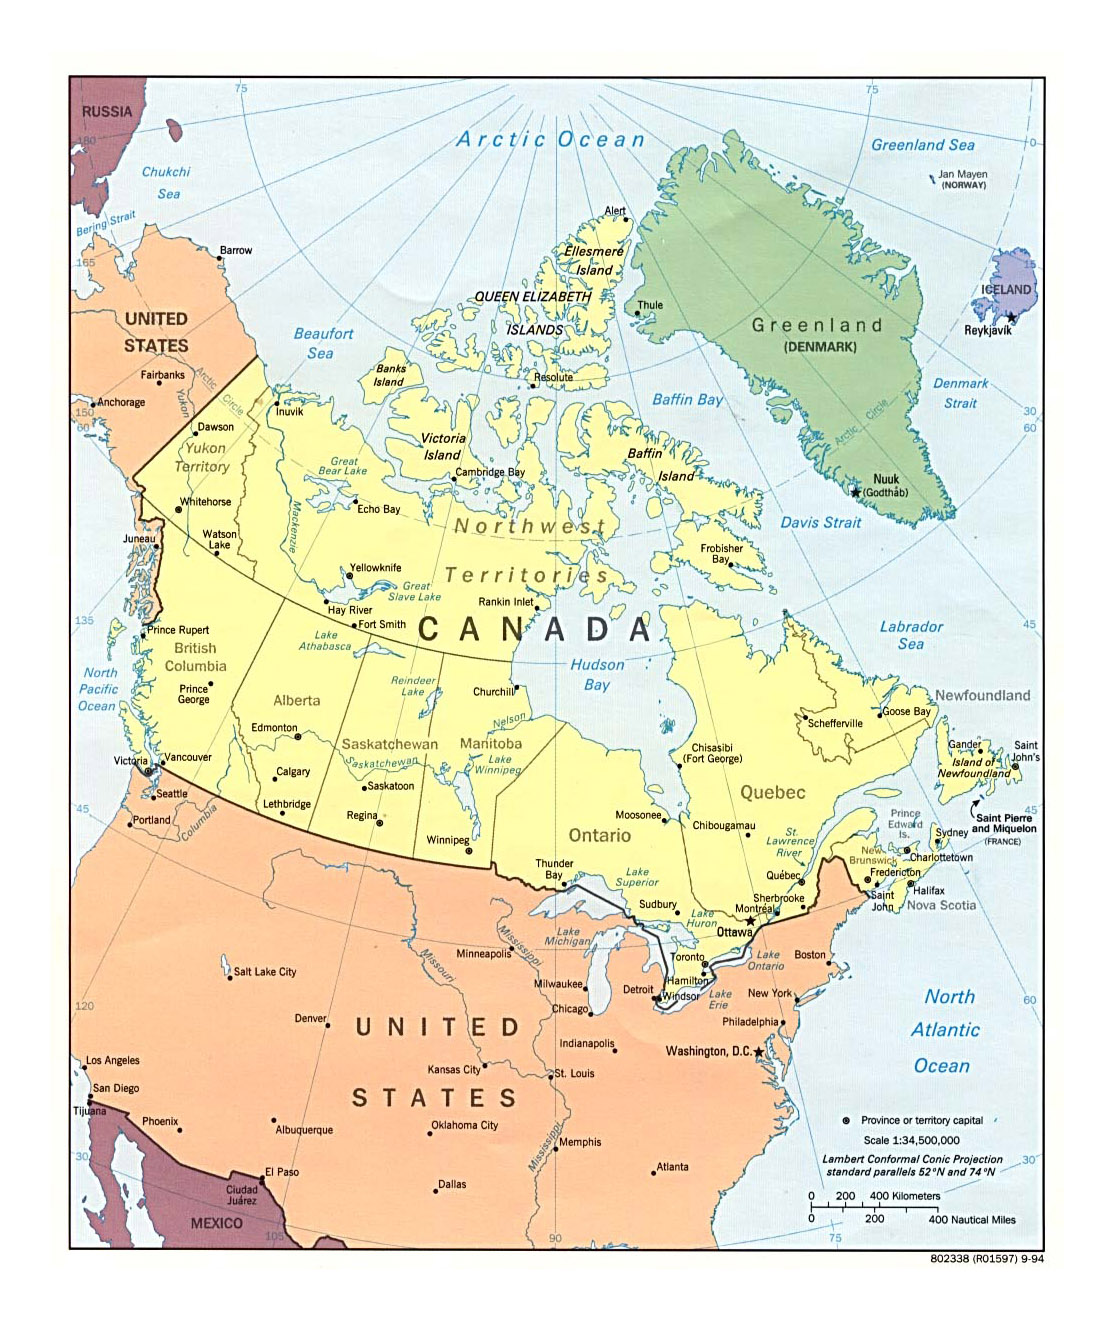 detailed political and administrative map of canada with major cities 1994